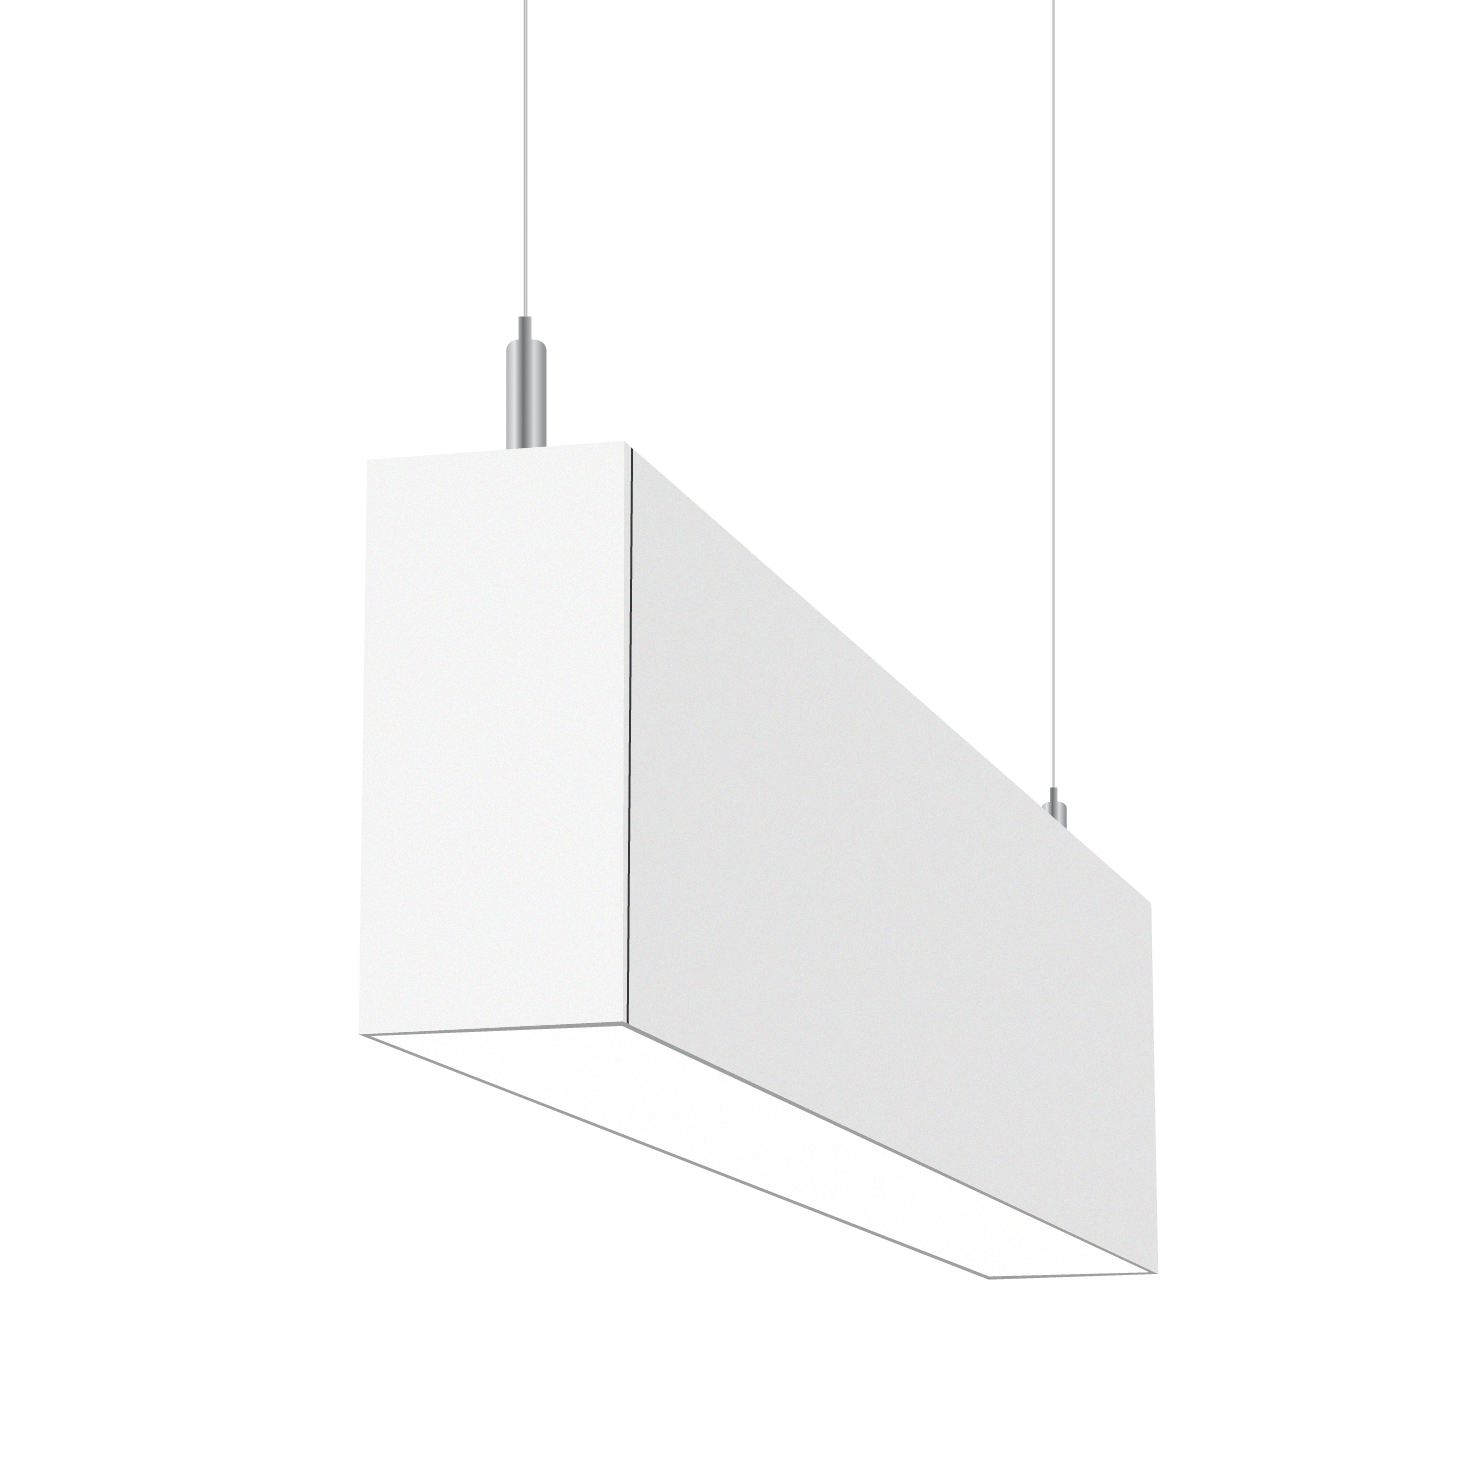 Alcon lighting 14070 8 illumine 8 foot architectural 5 channel color alcon lighting 14070 8 illumine 8 foot architectural 5 channel color tuning led linear pendant directindirect light strip fixture alcon lighting arubaitofo Images